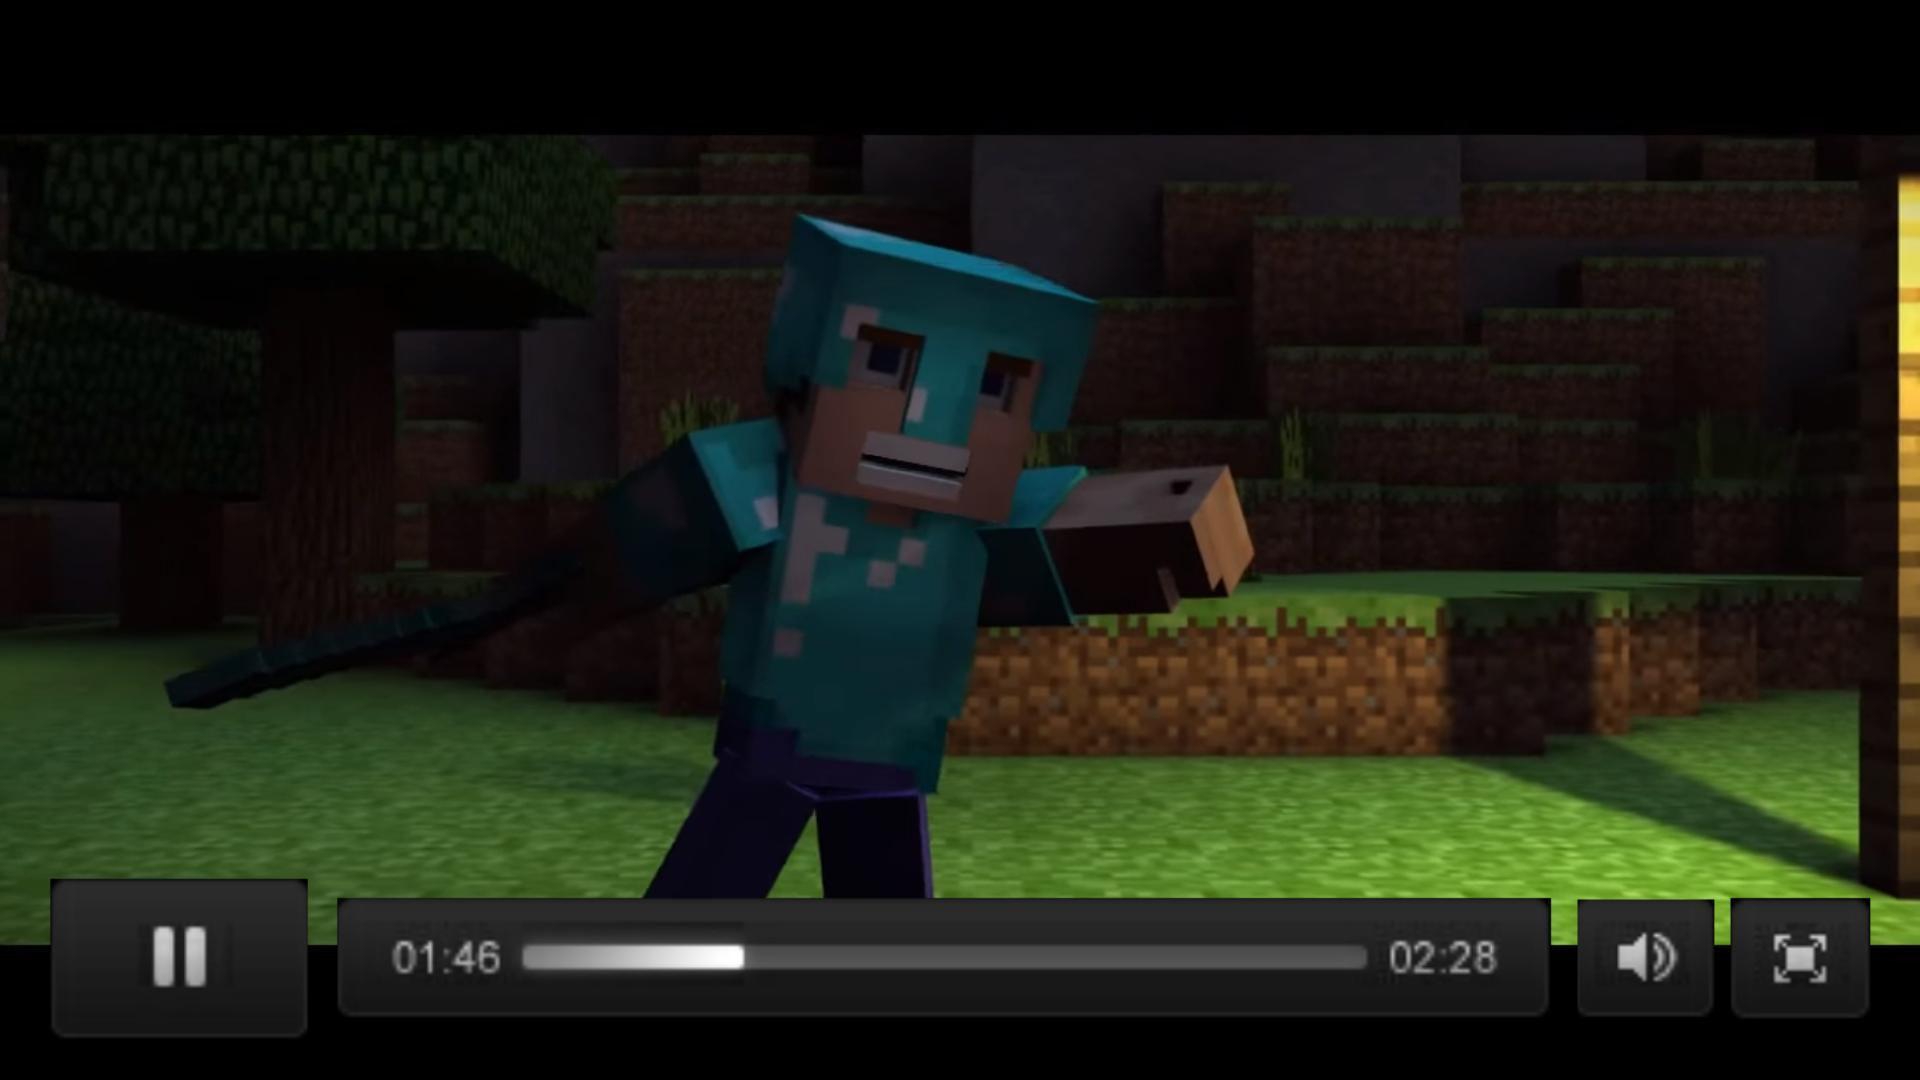 Revenge - A Minecraft Parody for Android - APK Download